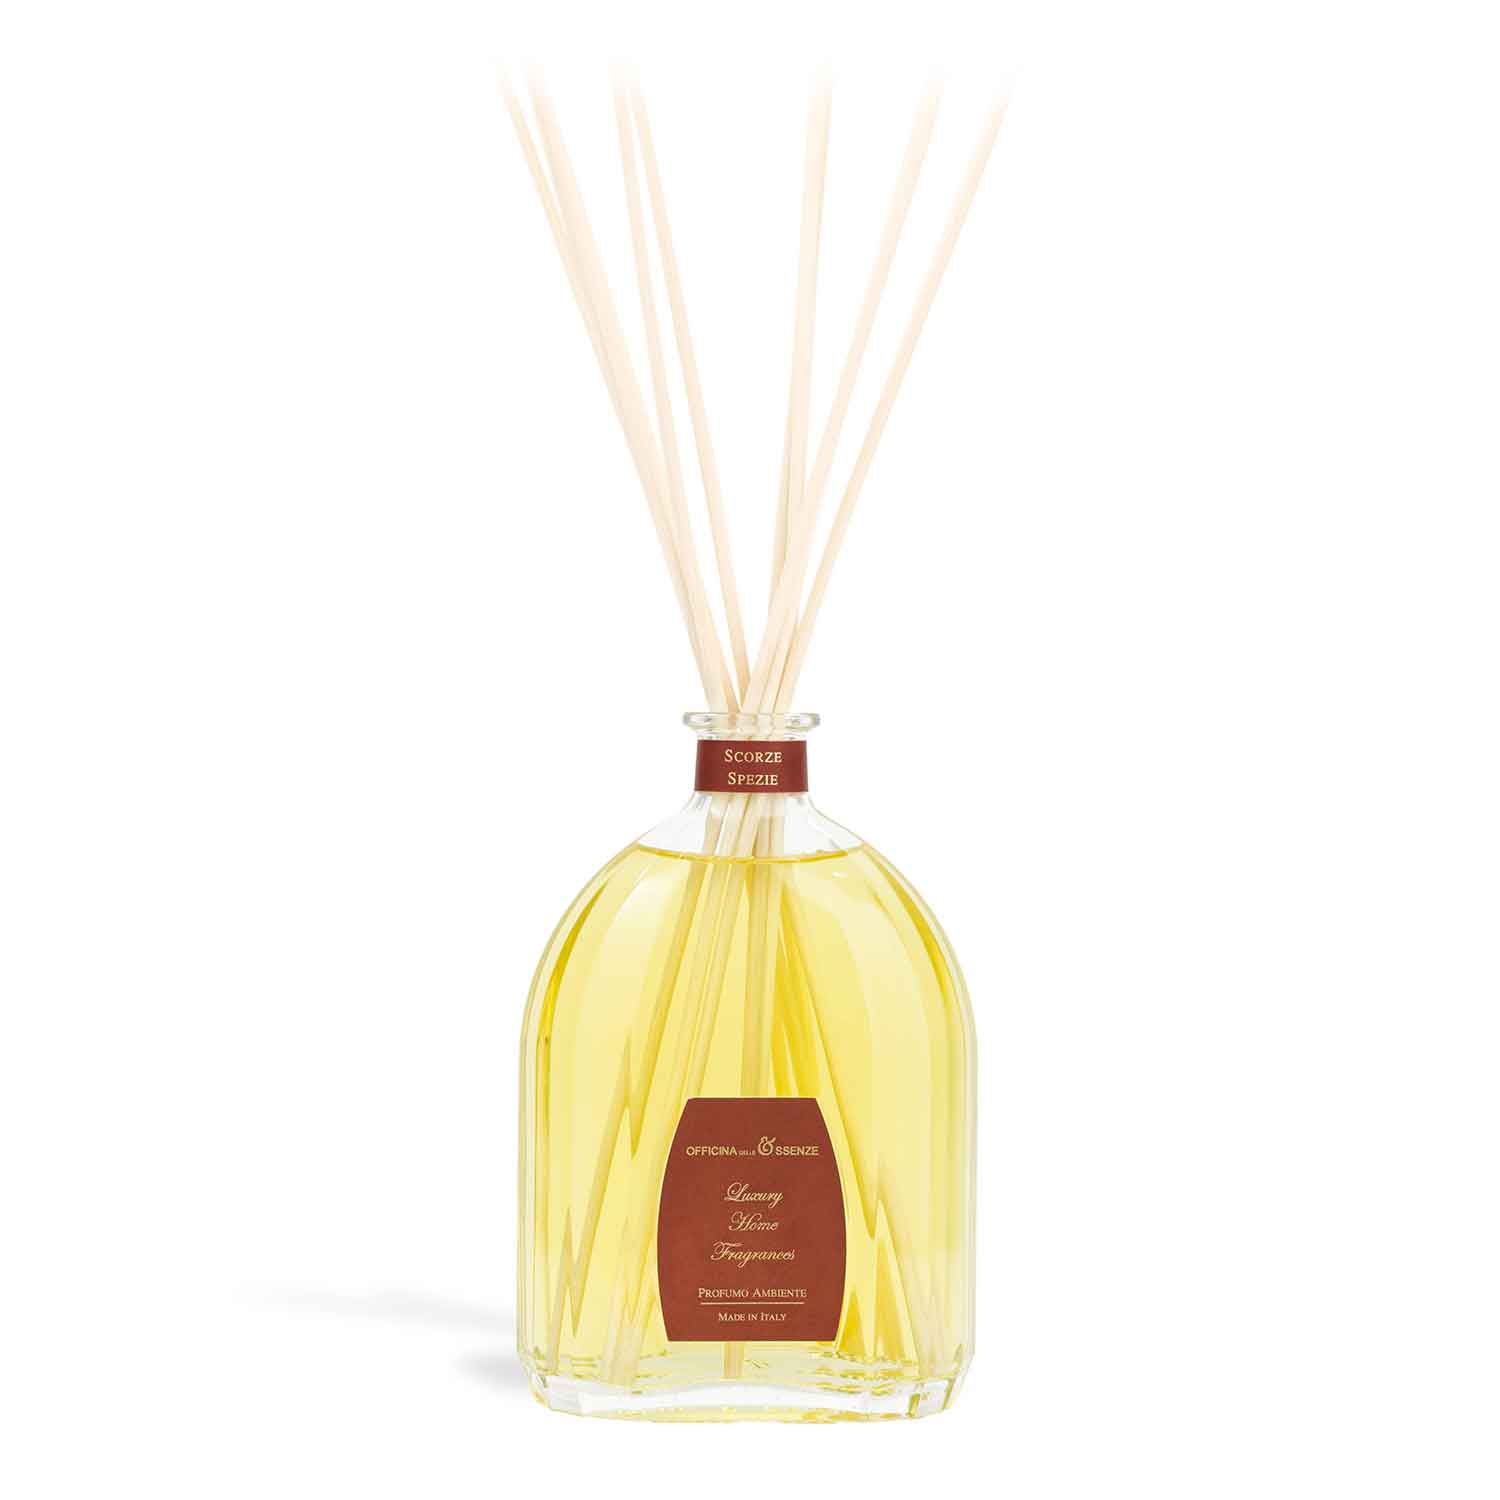 Scorze Spezie - Home fragrance diffuser with essential oils, 500 ml